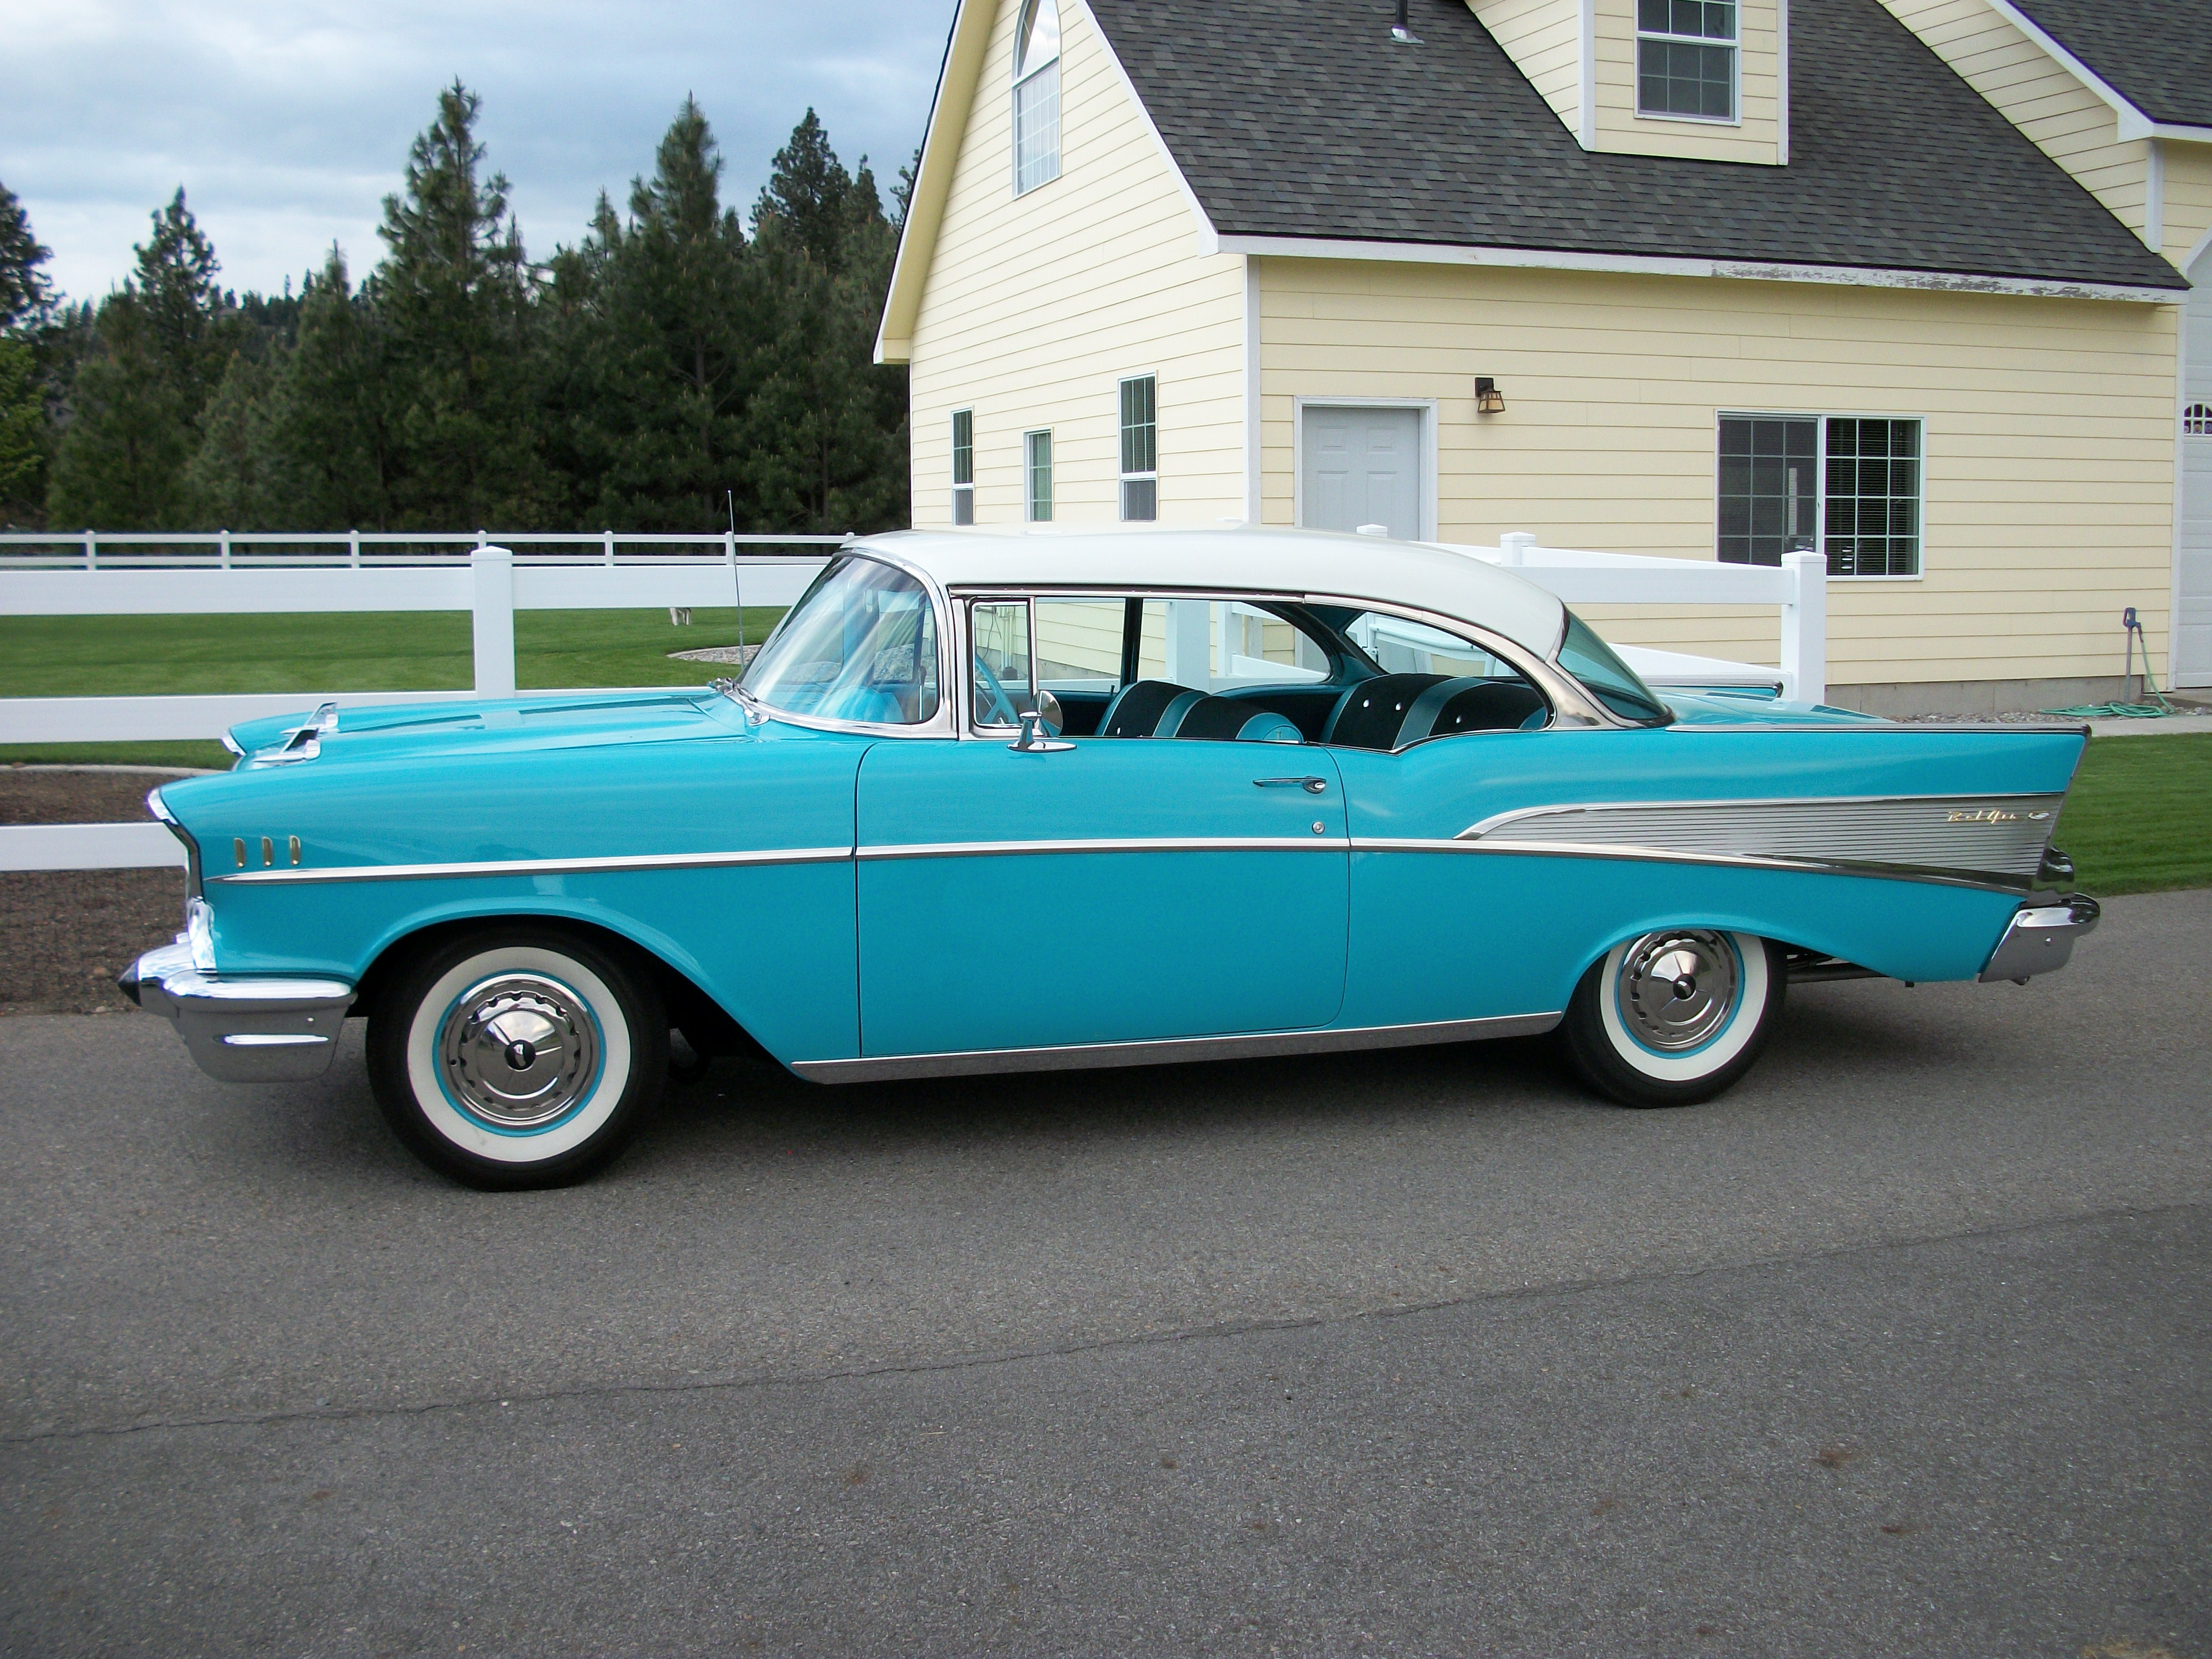 1957 Chevrolet Bel Air 2 Door Hardtop     Classic Garage 1957 Chevrolet Bel Air 2 Door Hardtop